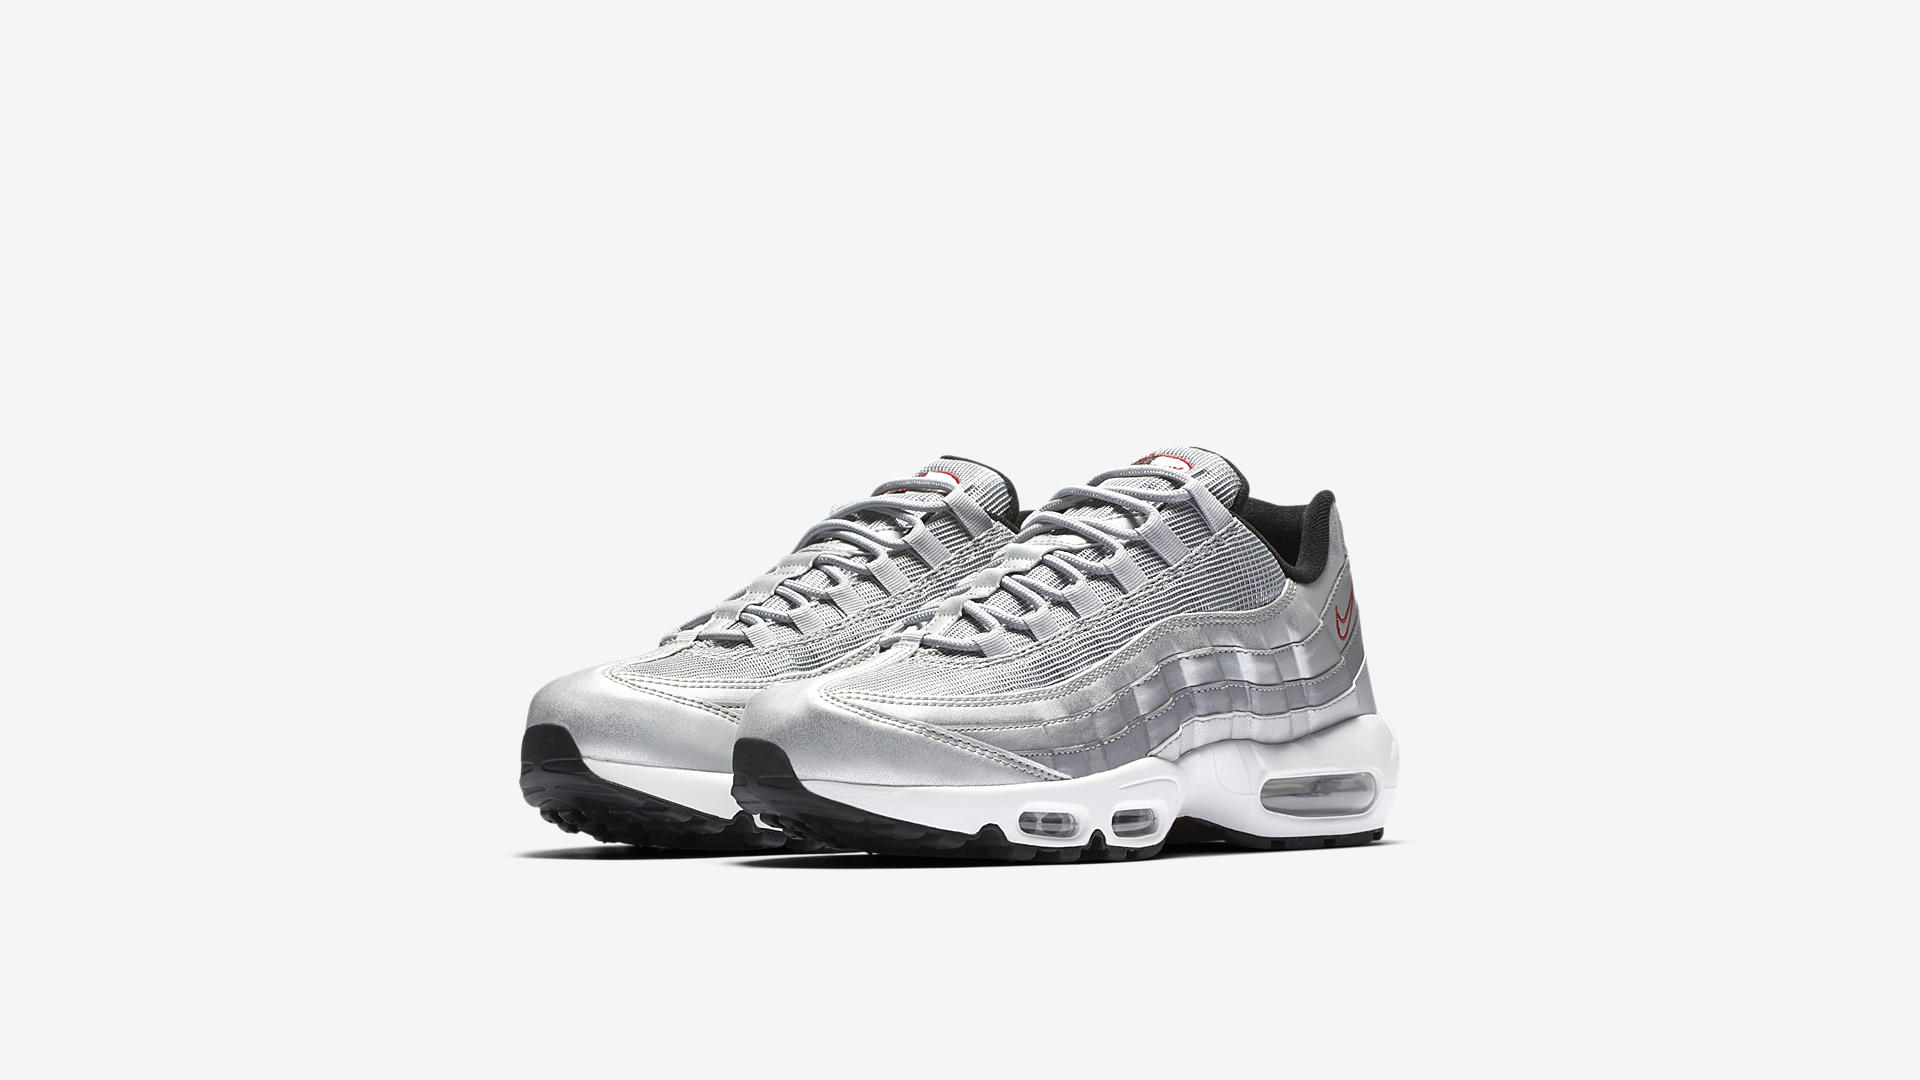 Nike Air Max 95 PRM Metallic Silver 918359 001 1